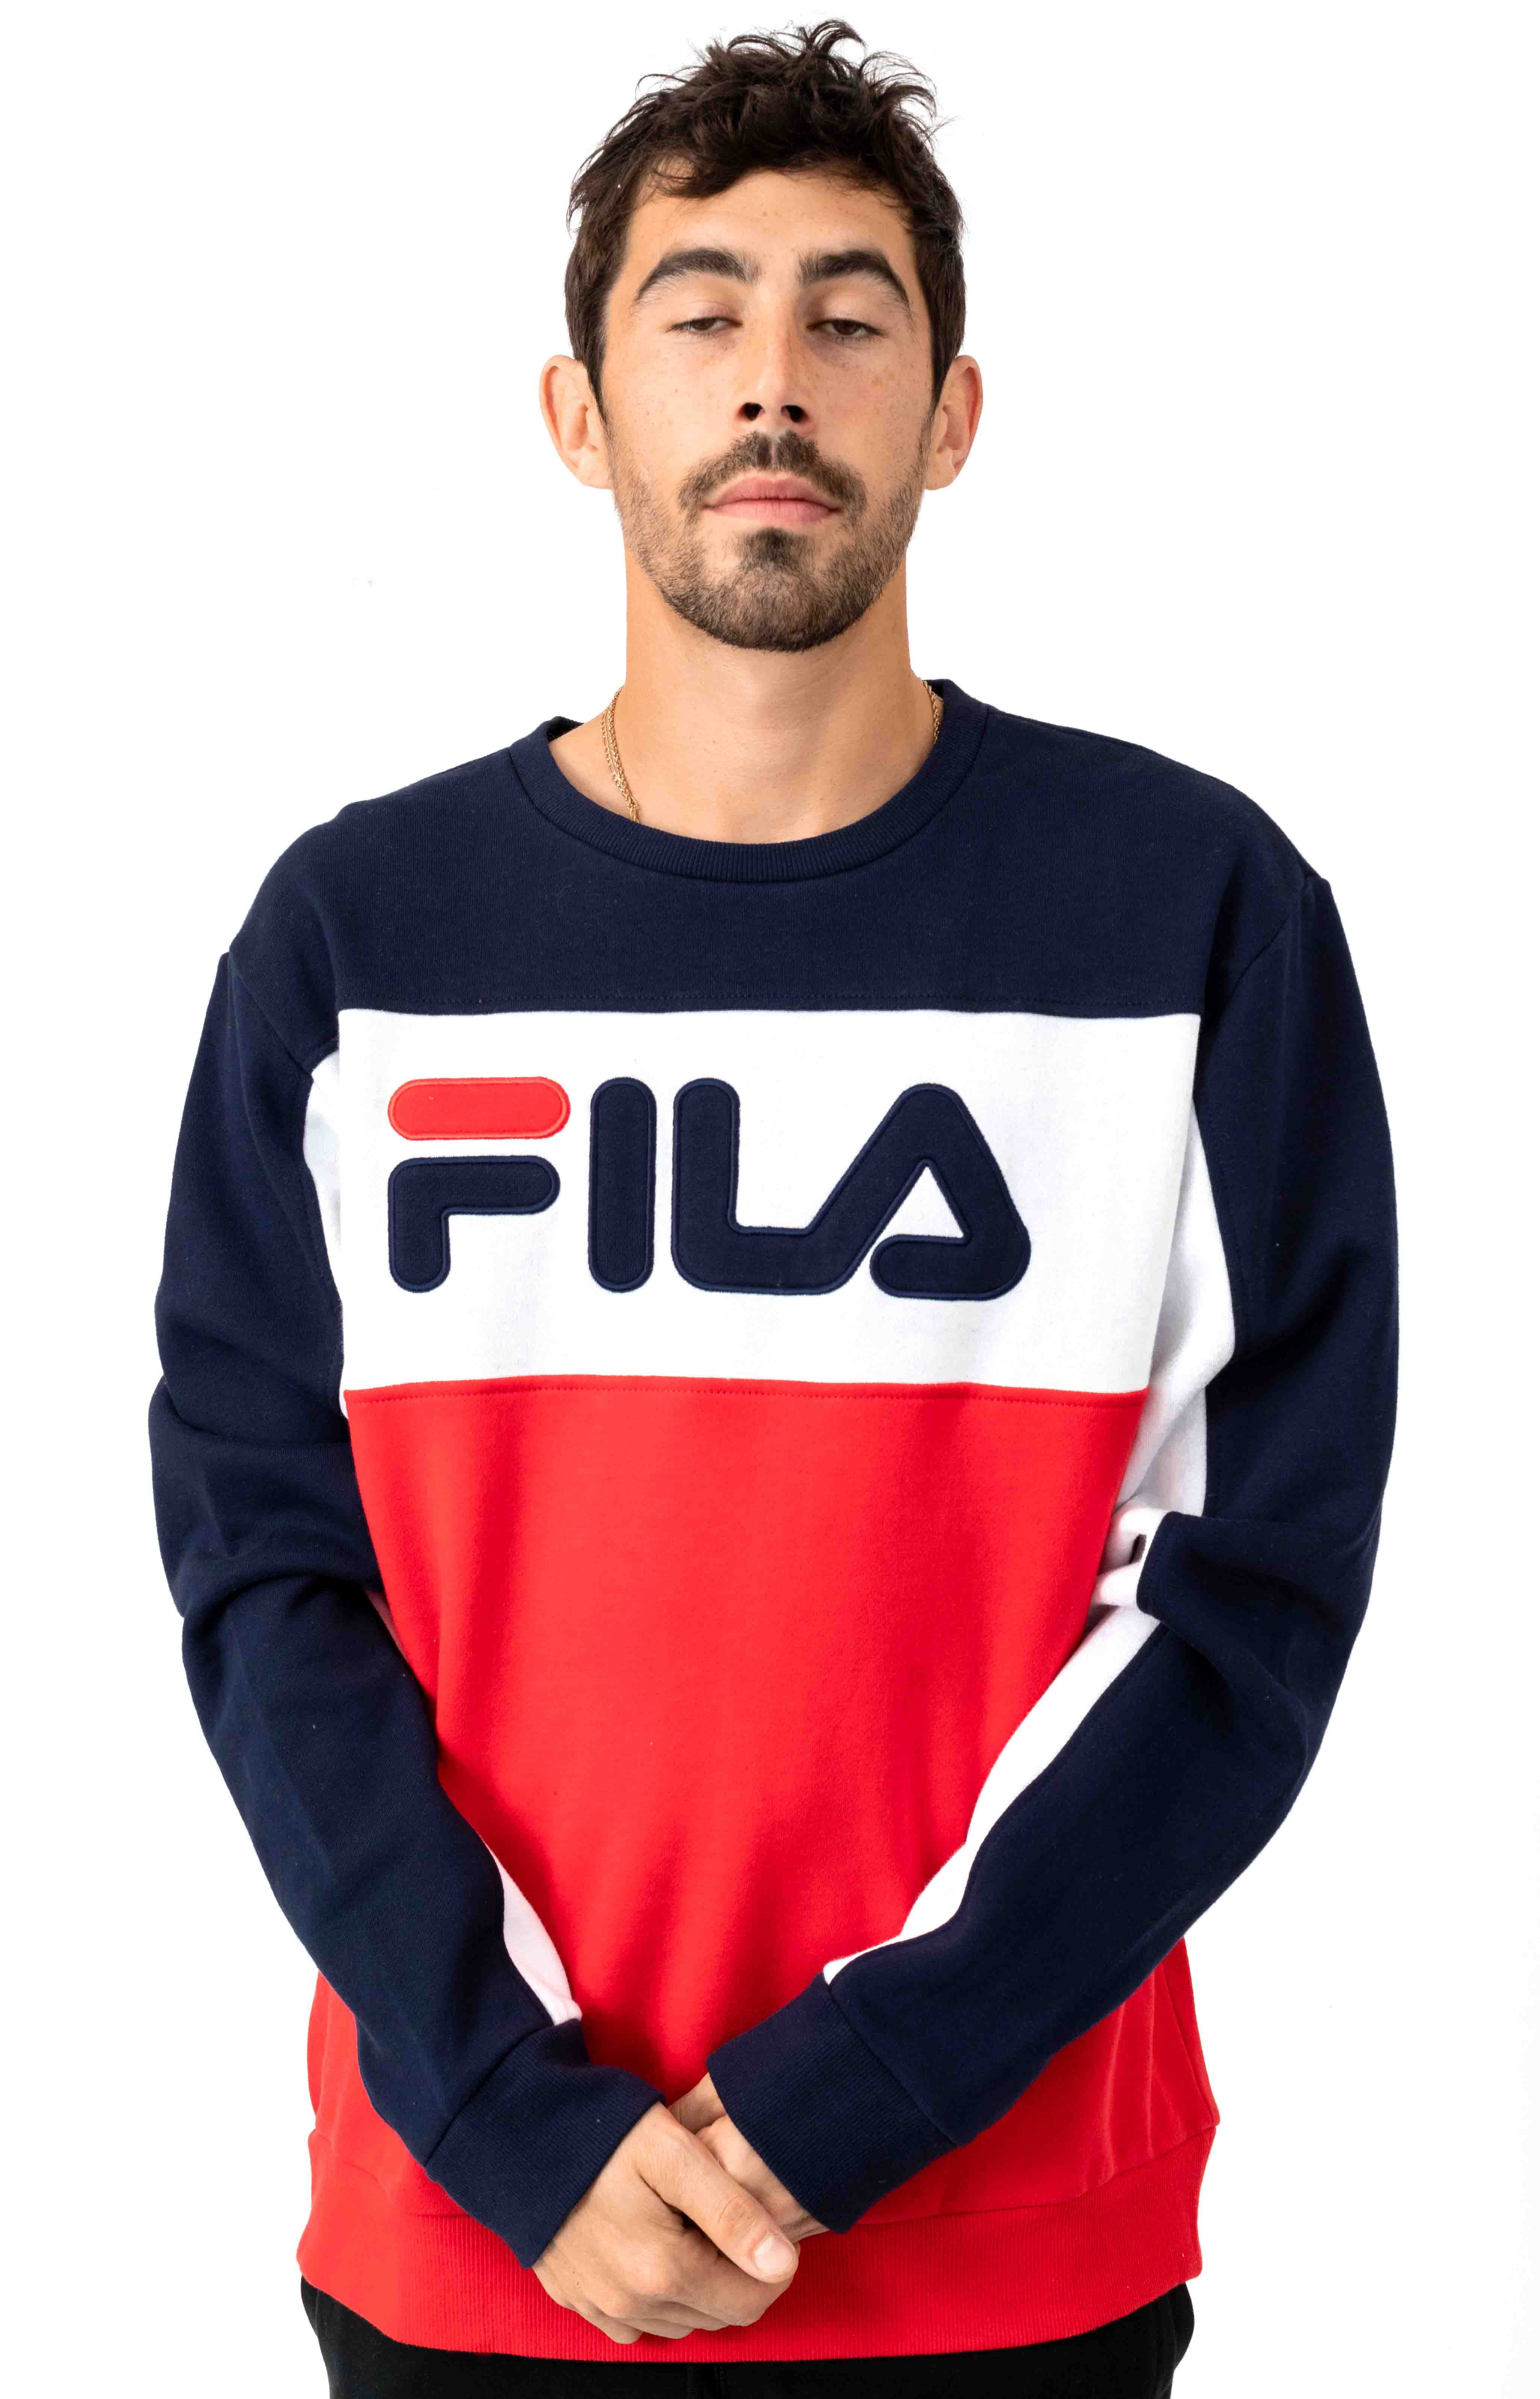 FILA, Lesner Fleece Crewneck - Peacoat/White/Red